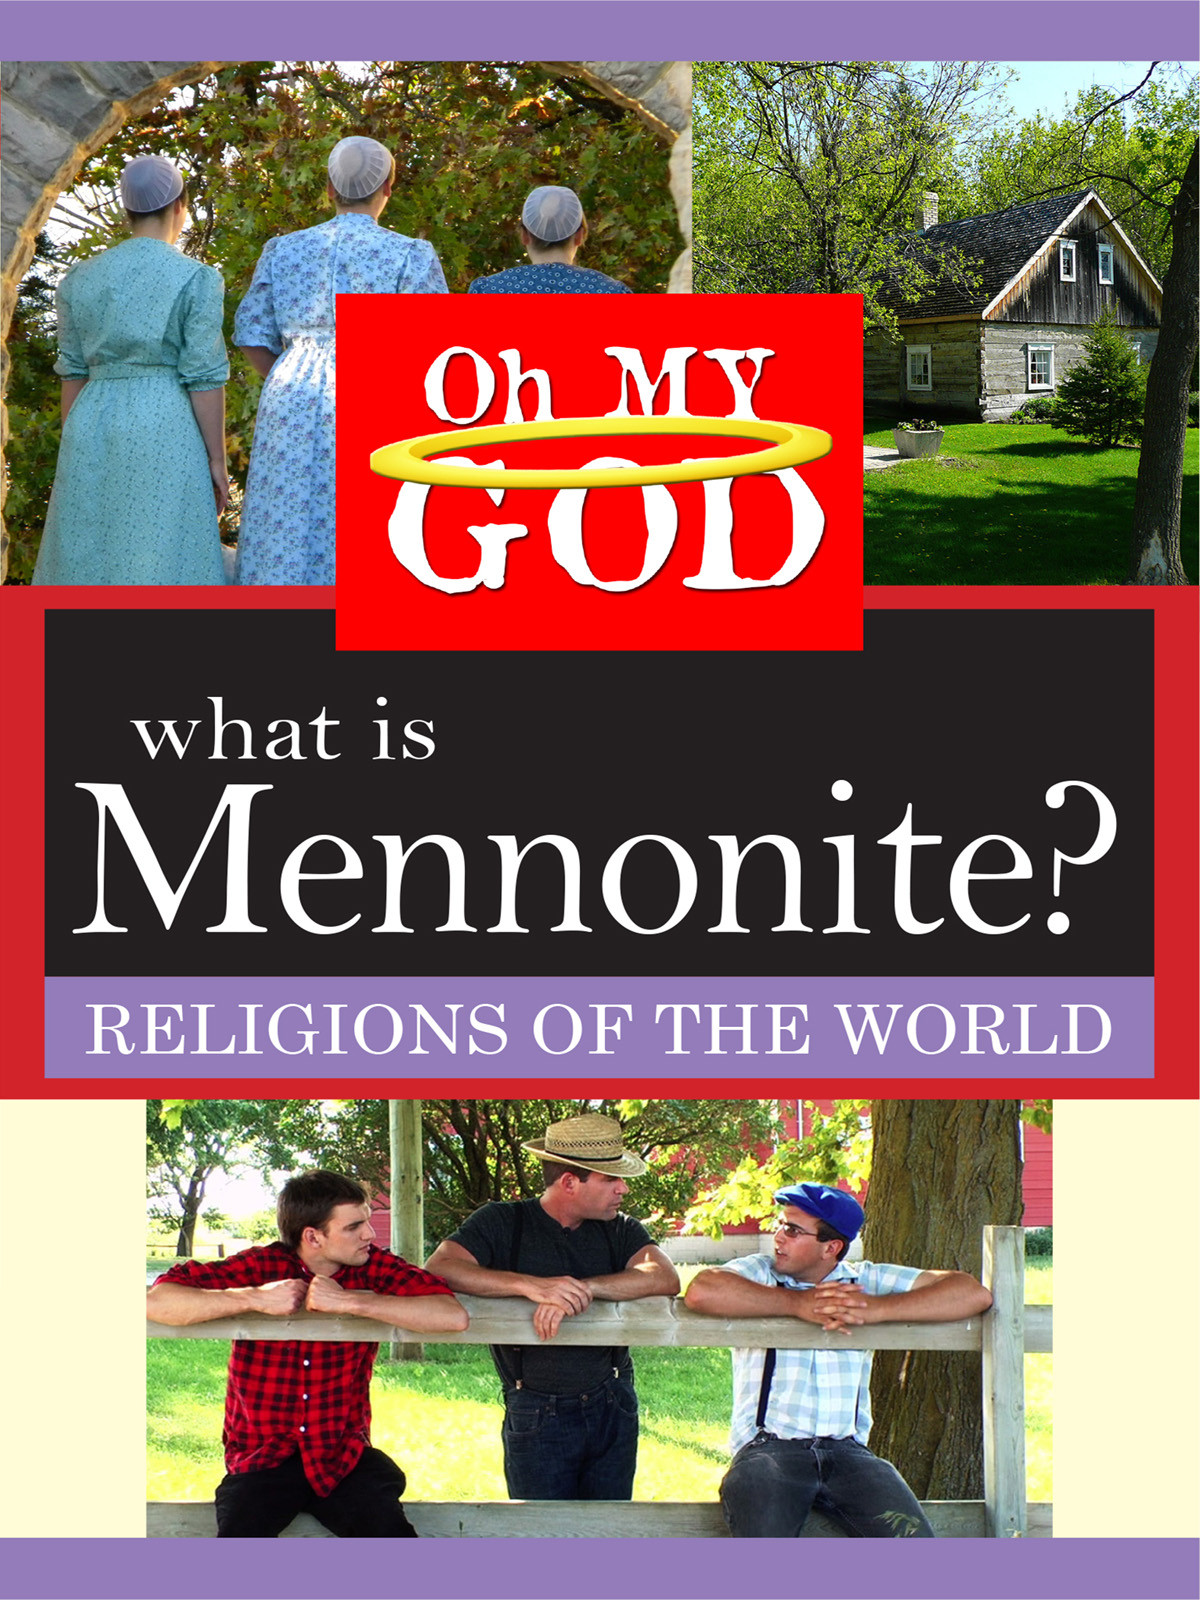 T2517 - What is Mennonite?